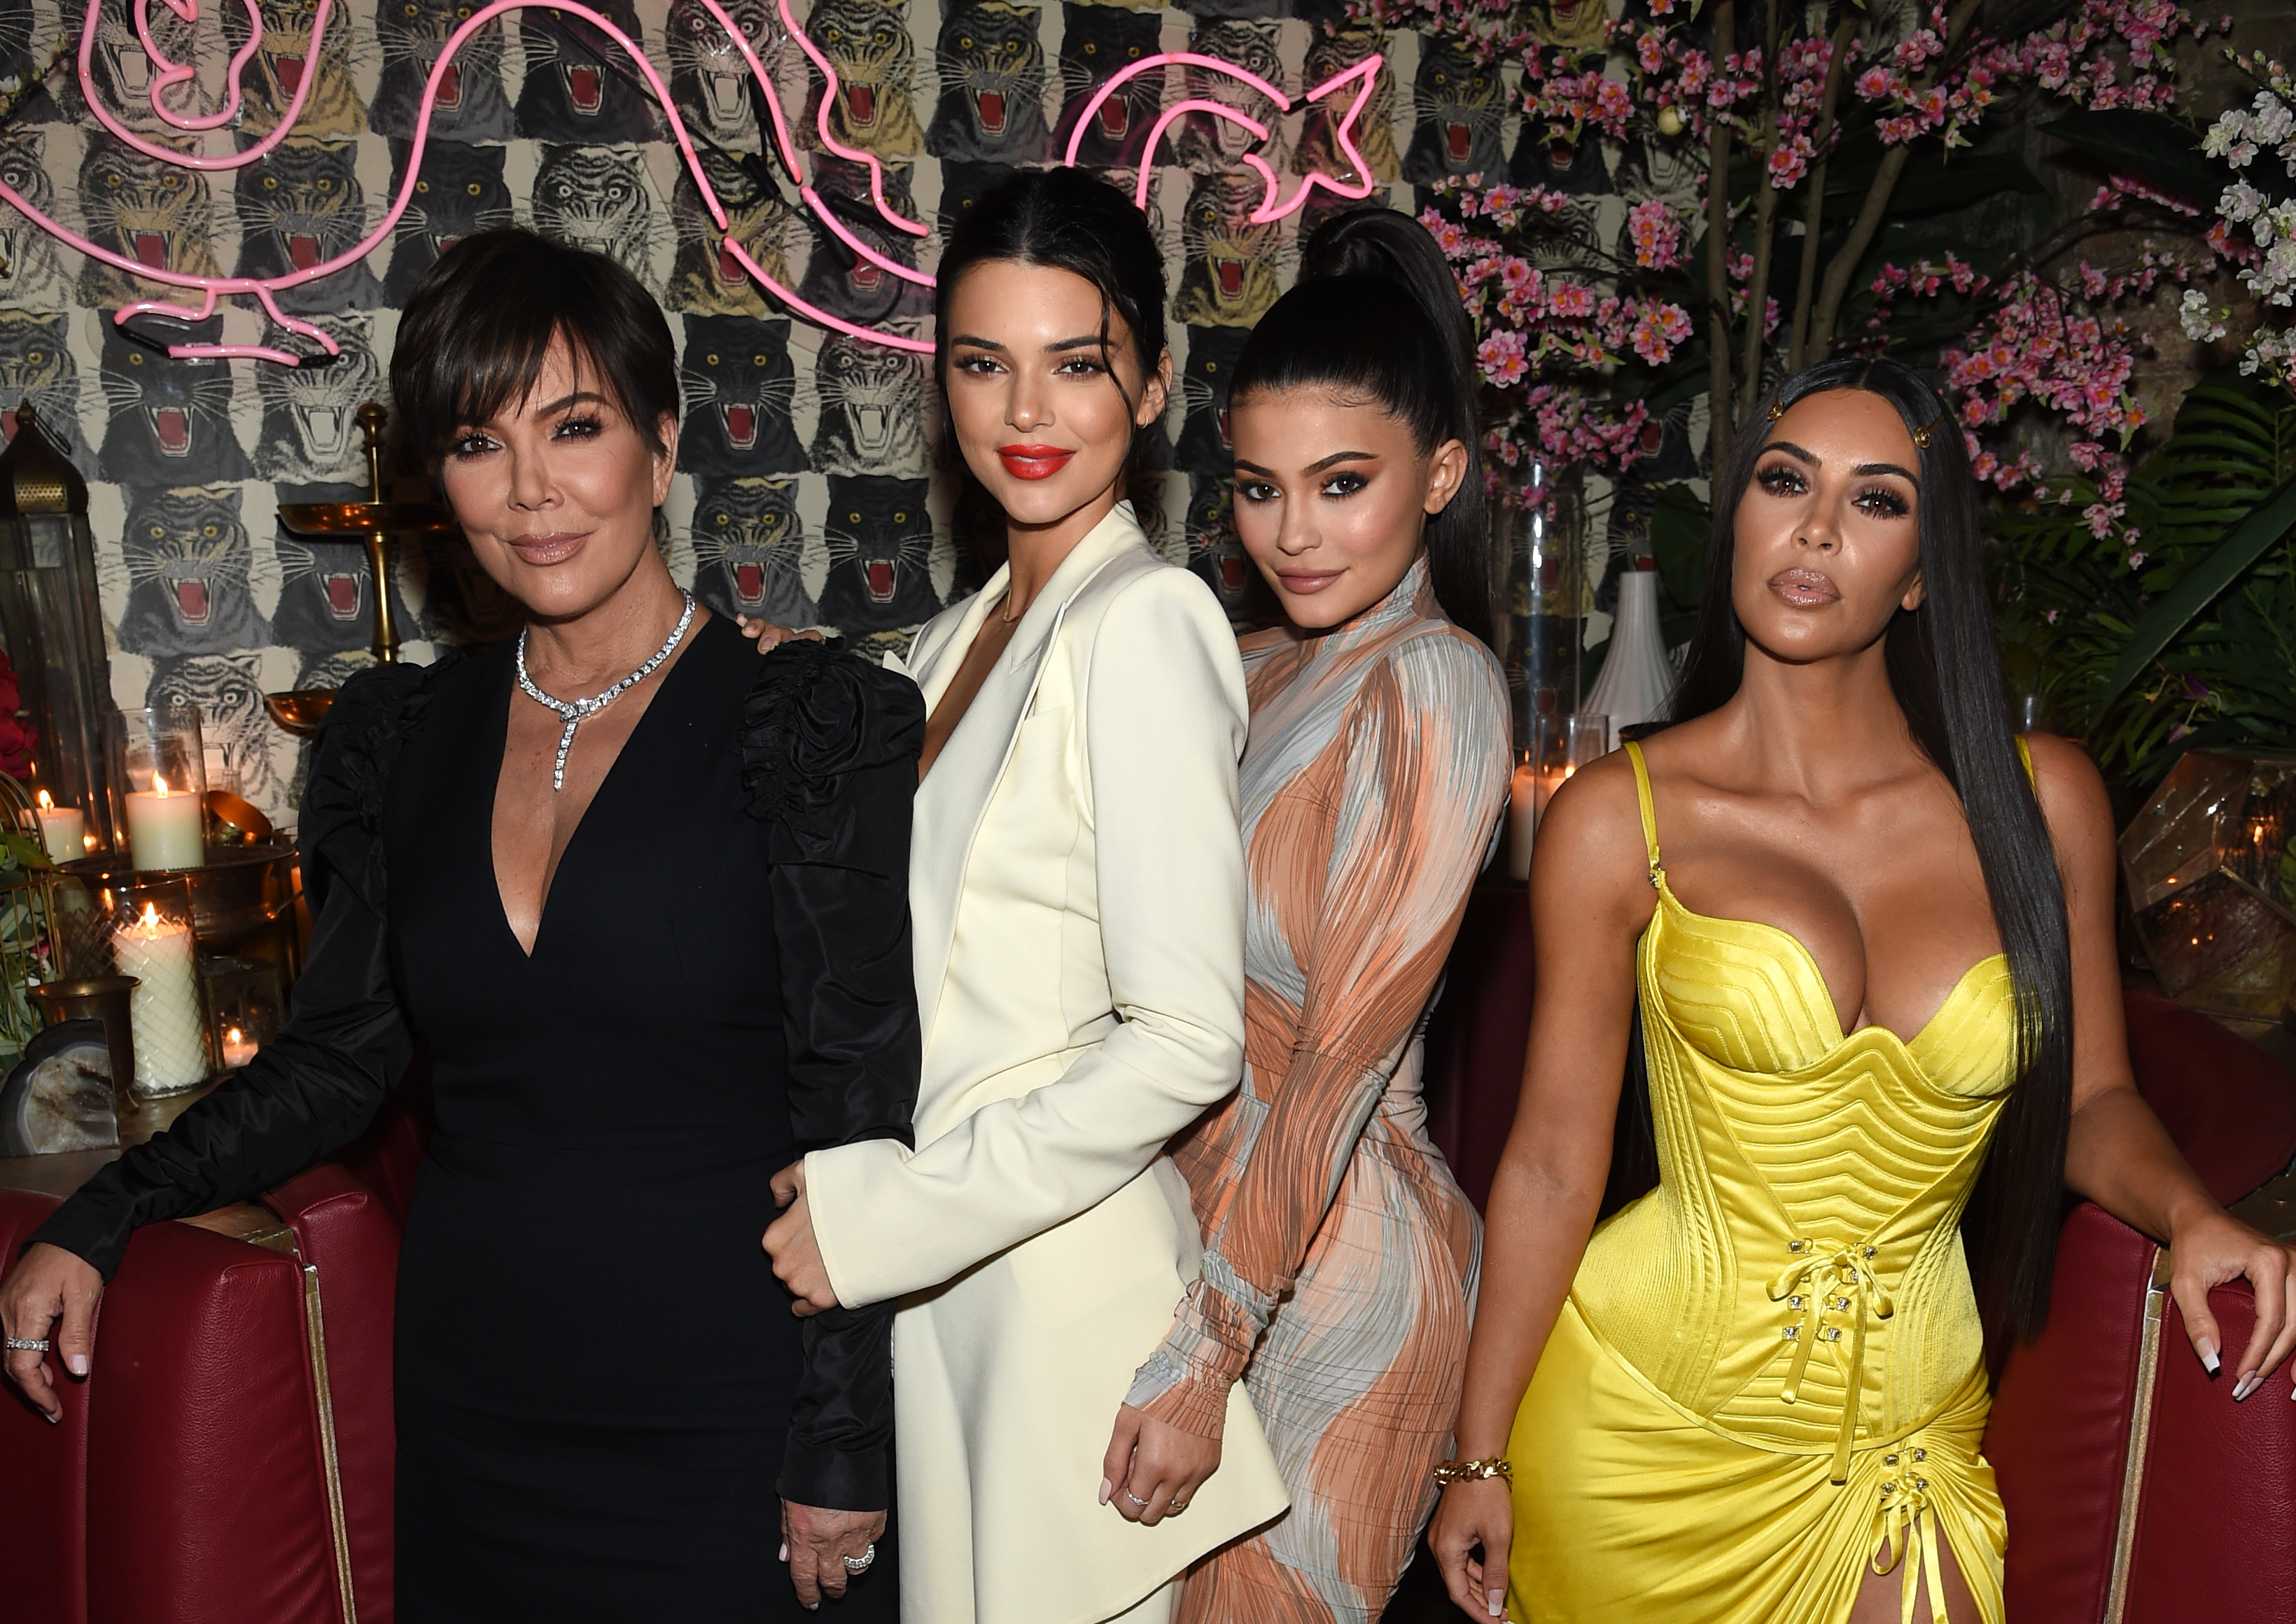 Kim Kardashian (right) is a fan of Hollywood skin treatments. (Photo by Dimitrios Kambouris/Getty Images for The Business of Fashion)